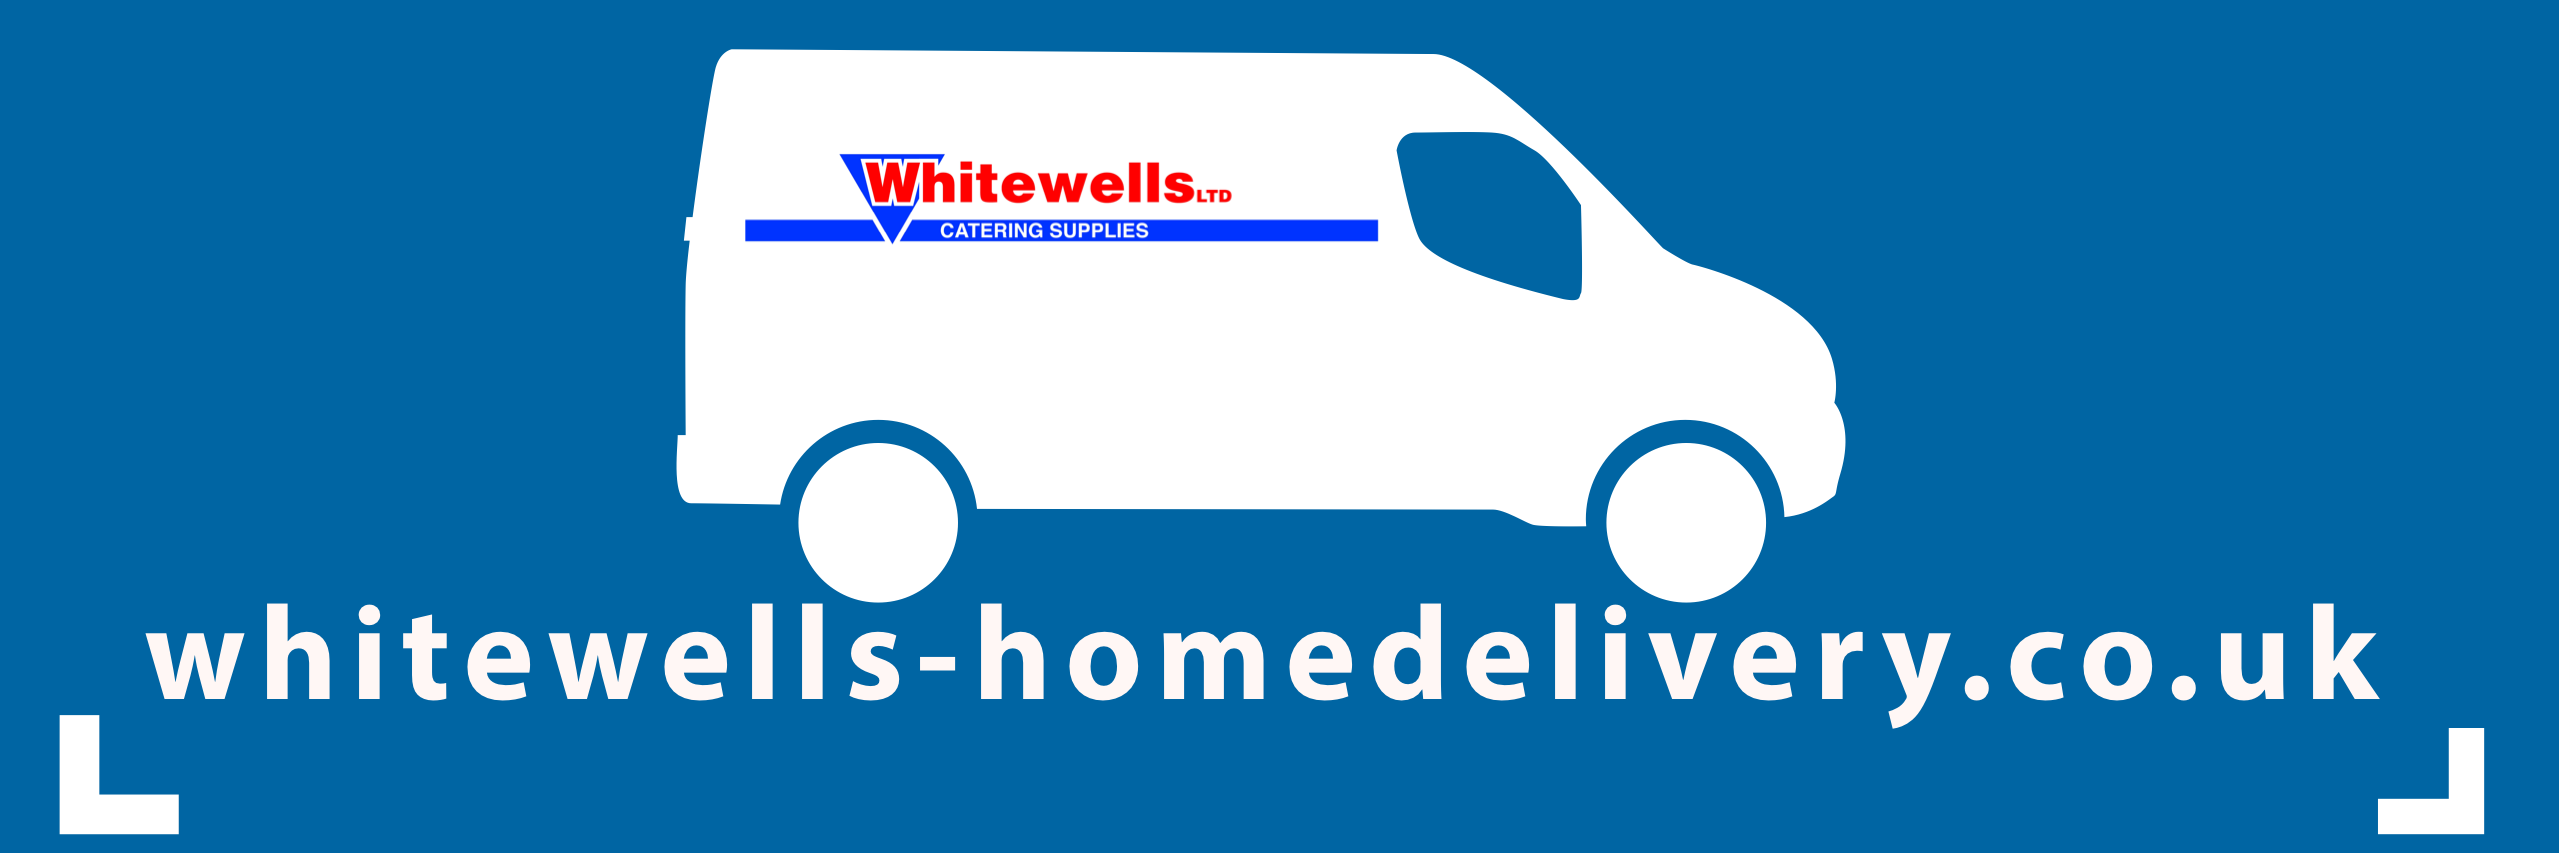 Whitewells Home Delivery